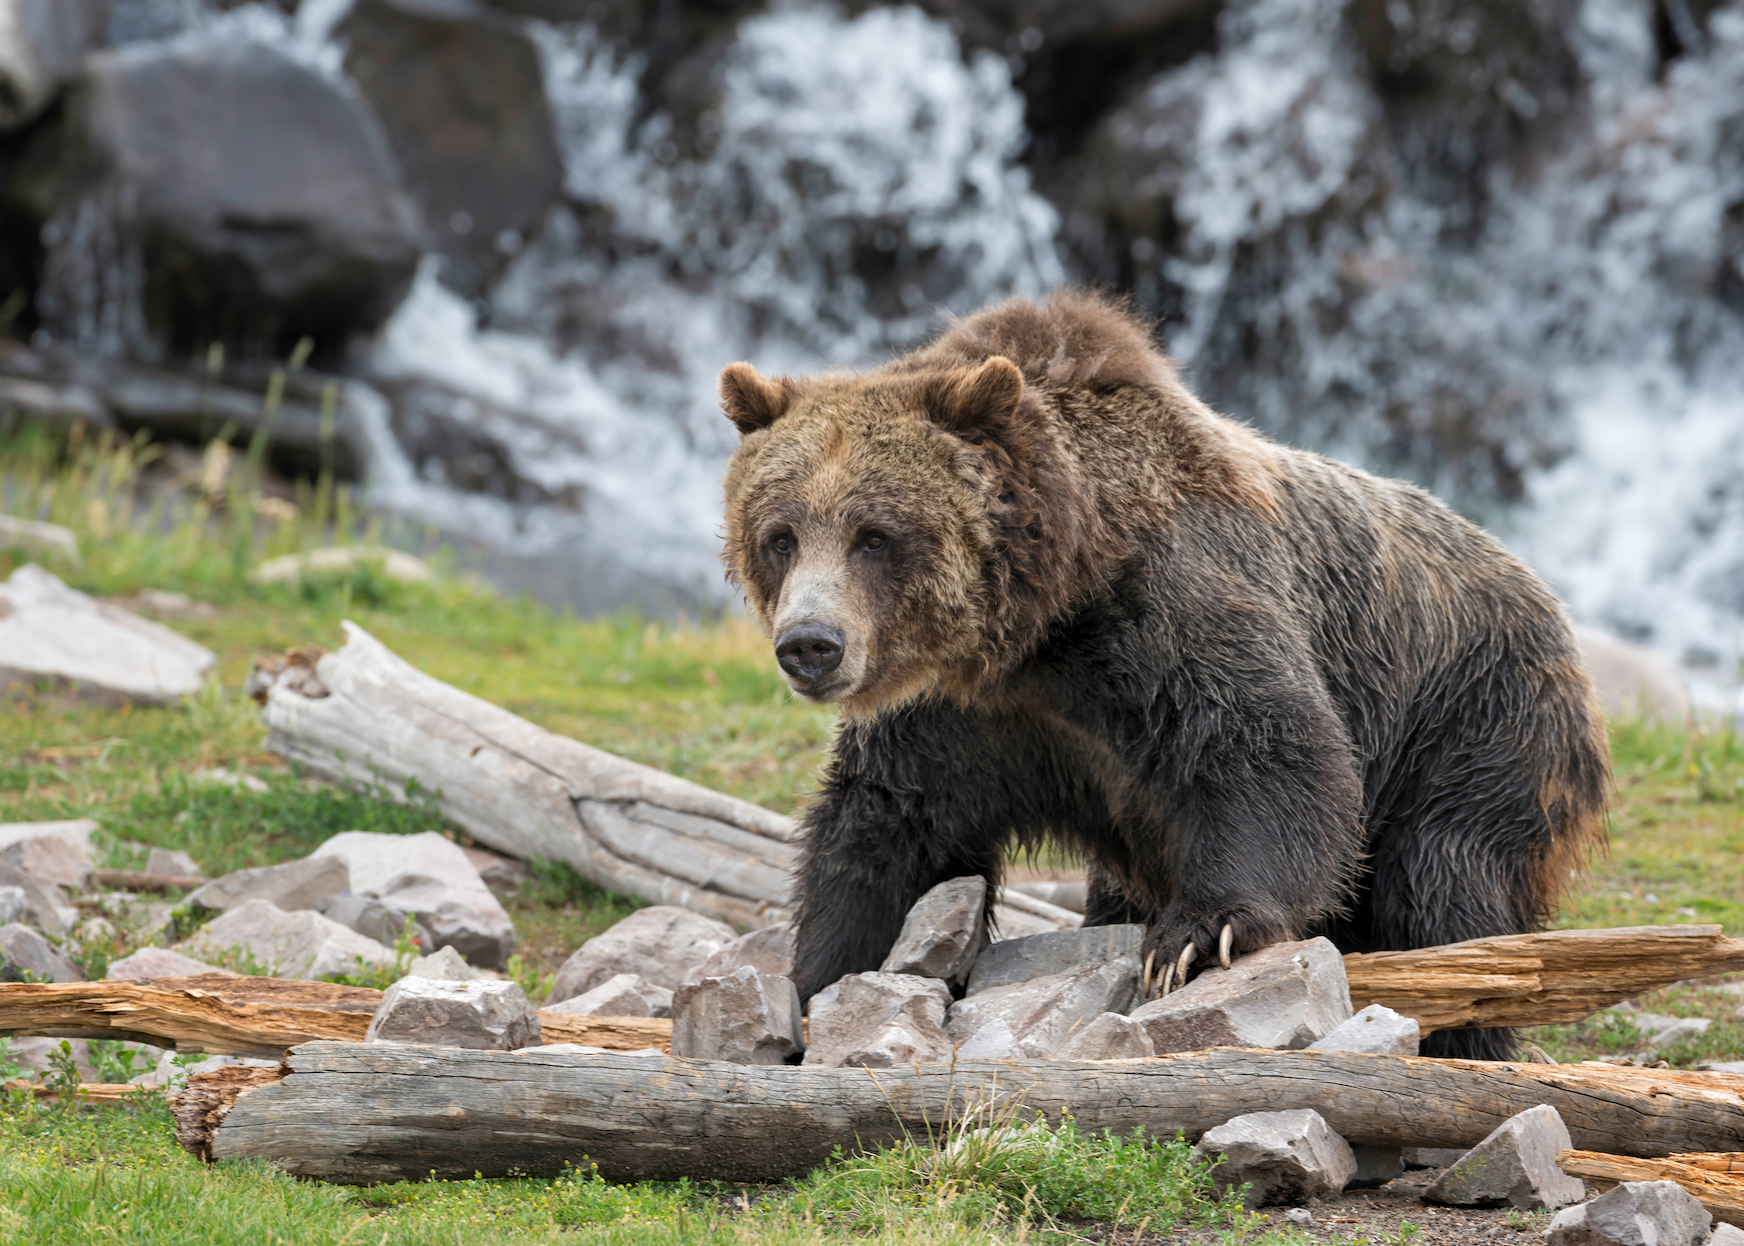 The first grizzly bear hunting season near Yellowstone National Park since 1974 will take place this September after the U.S. Fish and Wildlife Service voted to allow the hunting of up to 22 bears.